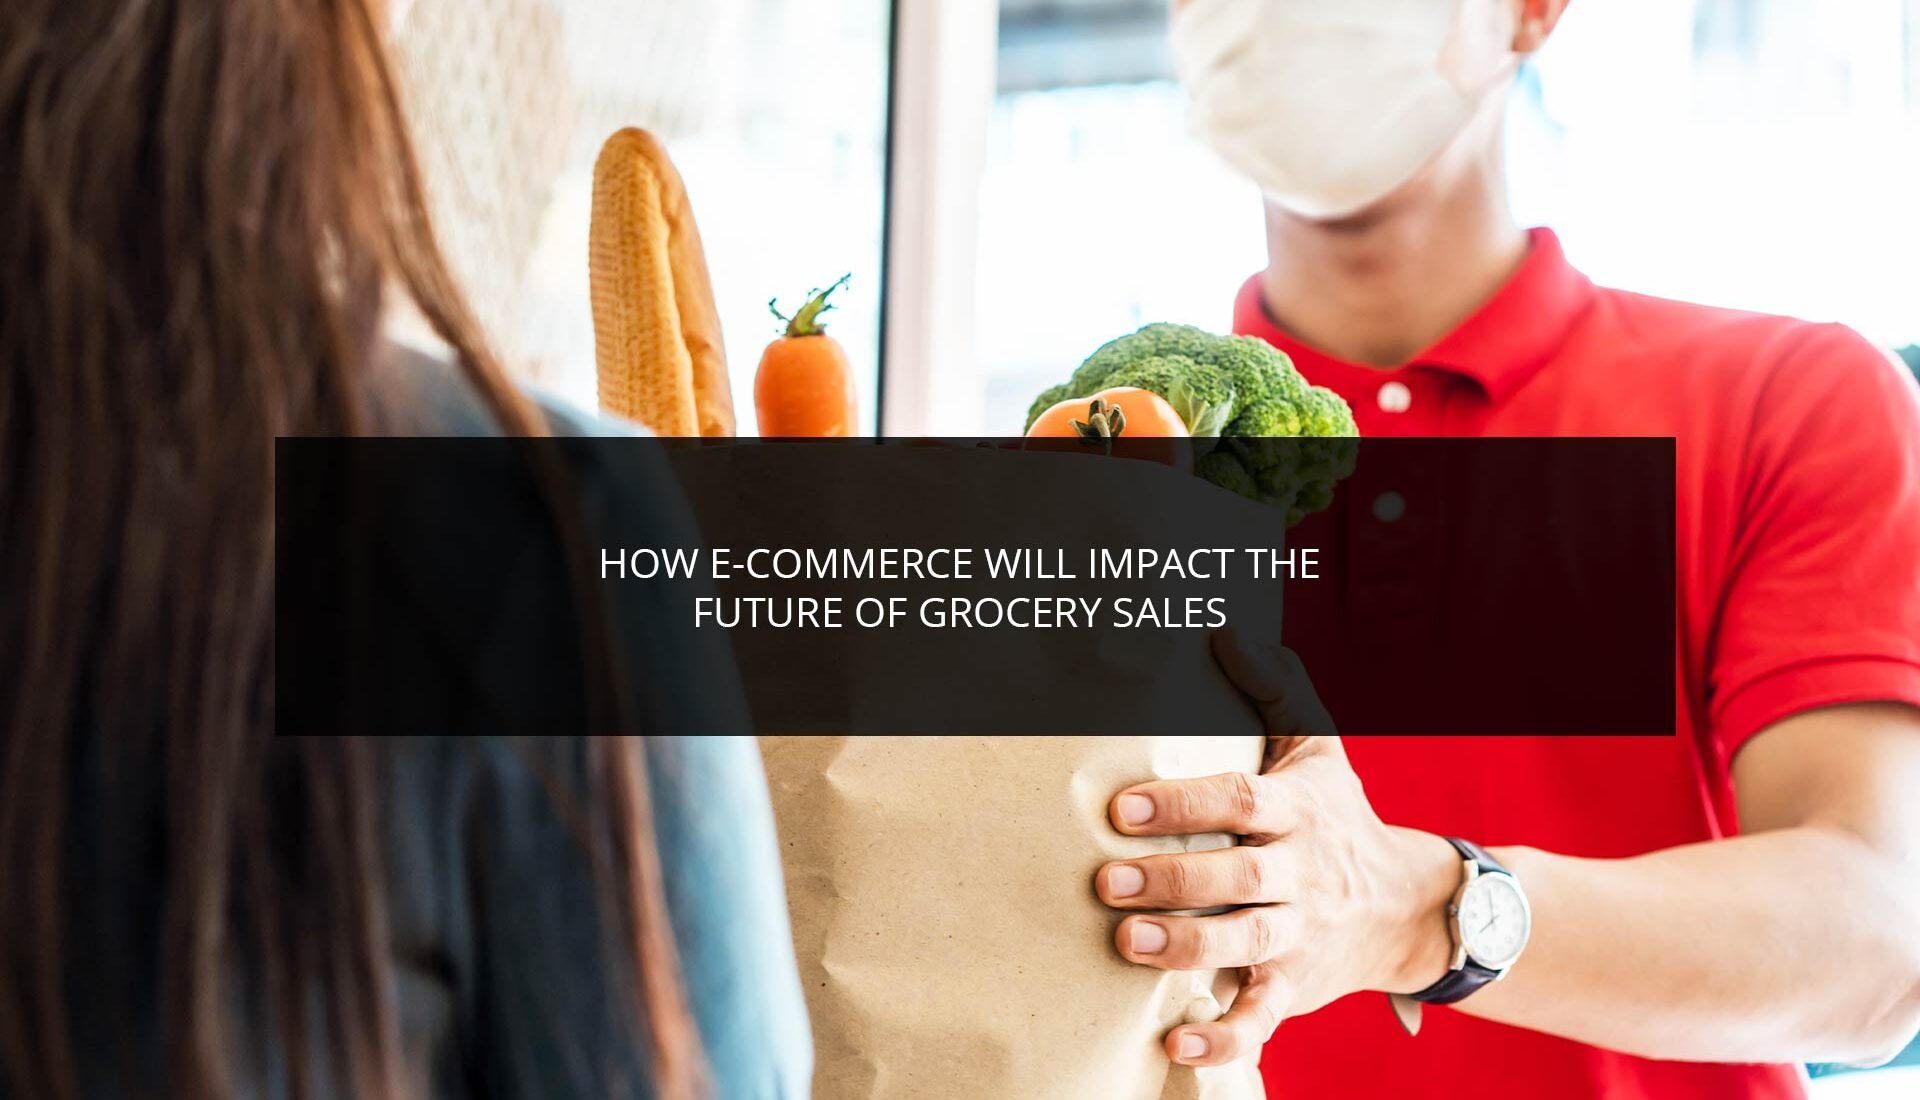 How E-commerce Will Impact the Future of Grocery Sales